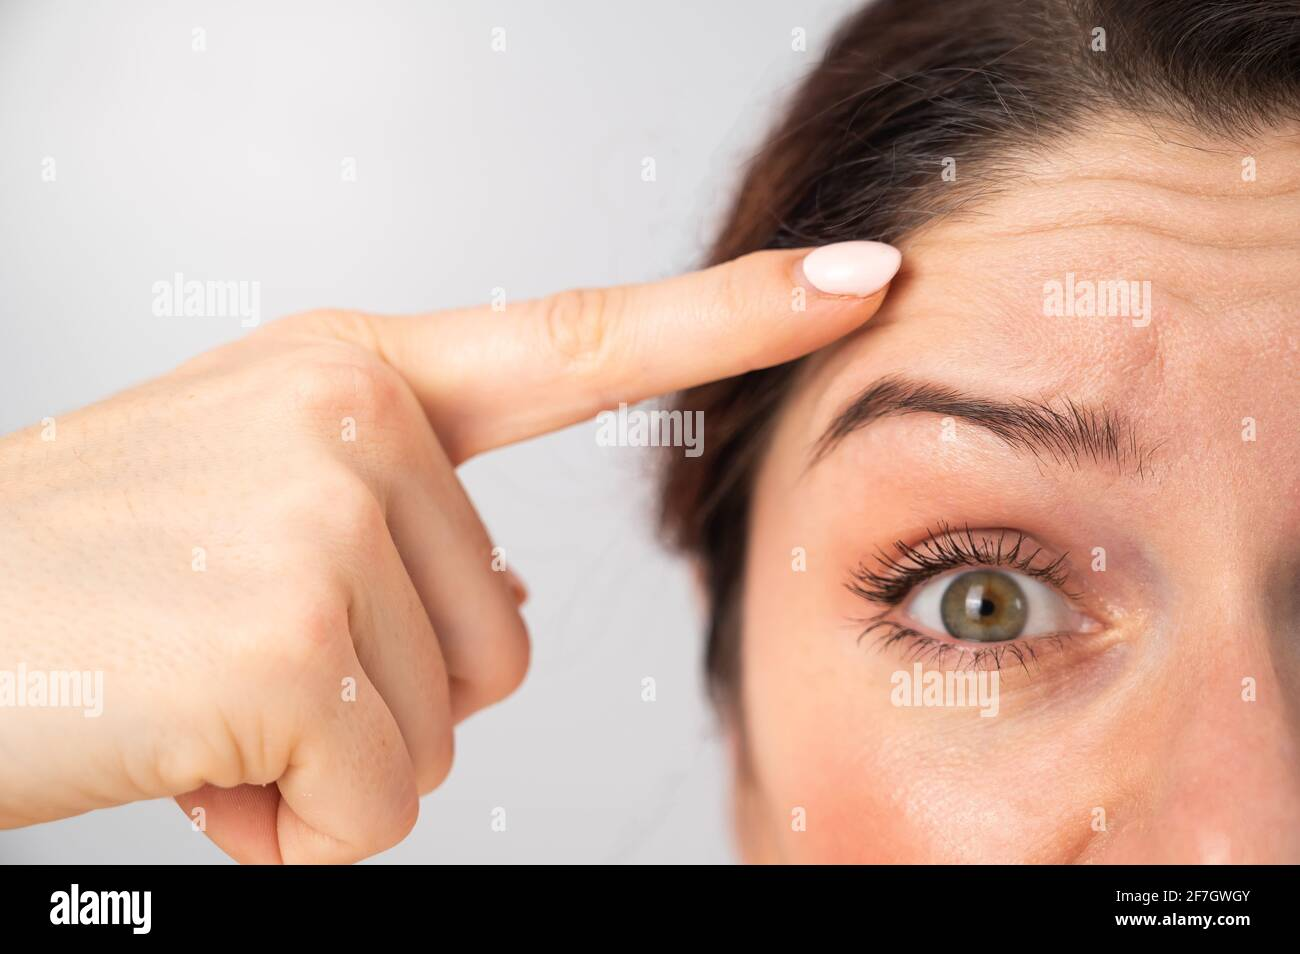 Close-up portrait of Caucasian middle-aged woman showing wrinkles on her forehead. Signs of aging on the face Stock Photo